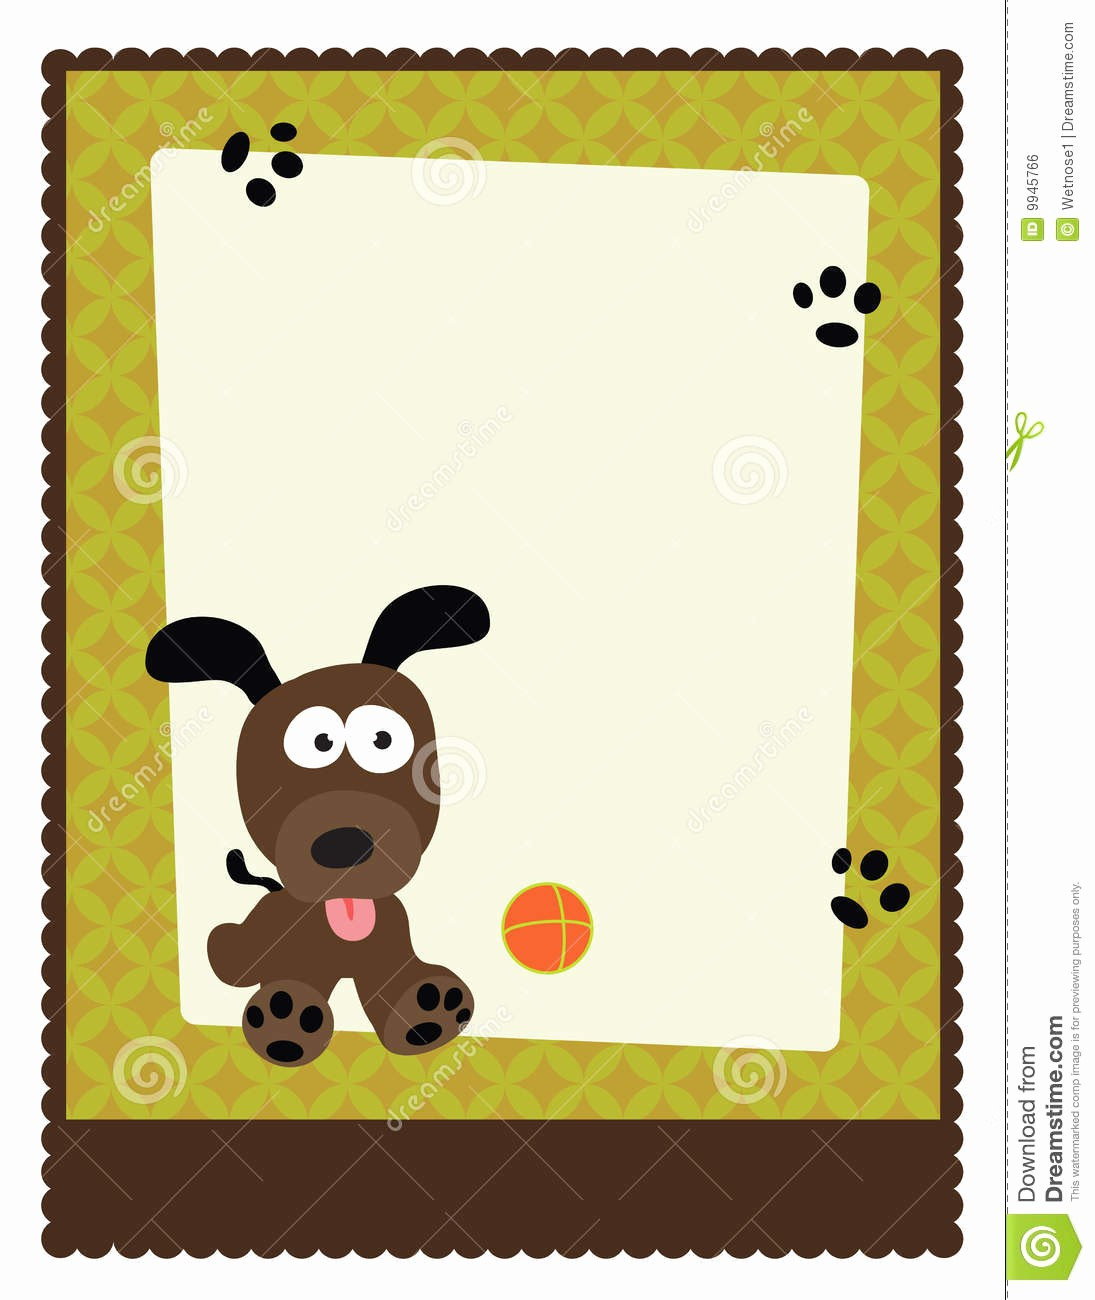 Puppy for Sale Flyer Templates Beautiful 8 5x11 Flyer Poster Template Stock Vector Image